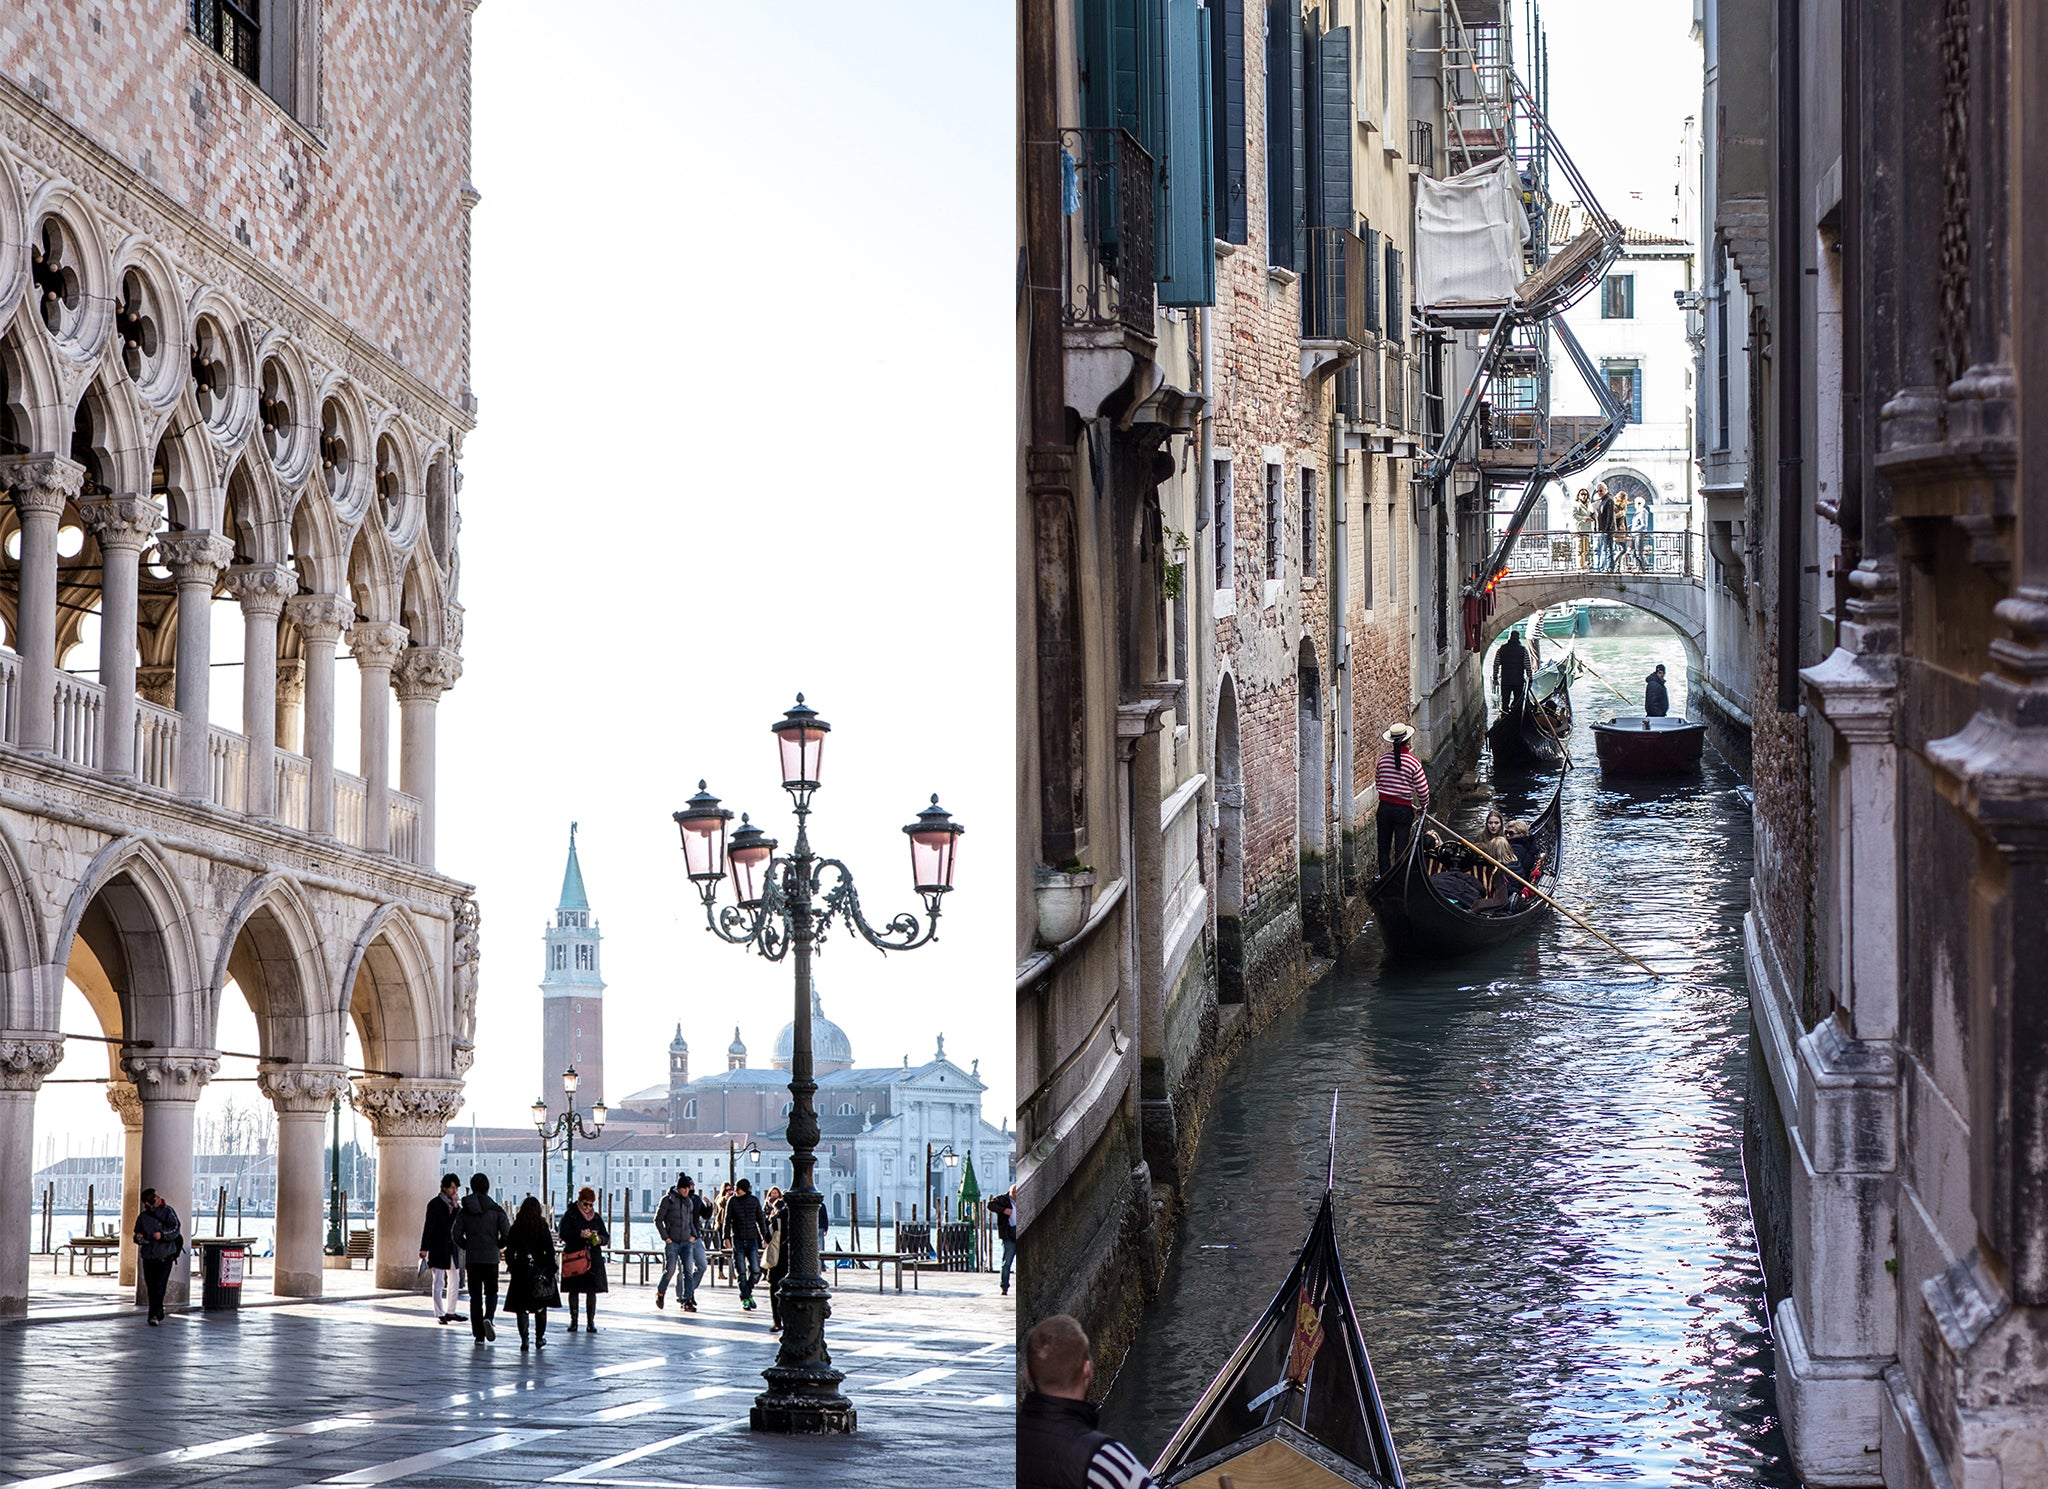 Venice, Italy | The Venetian Carnival - Food, Photography, Dreams | Food & Lifestyle Photography workshop | January 26th-28th 2018